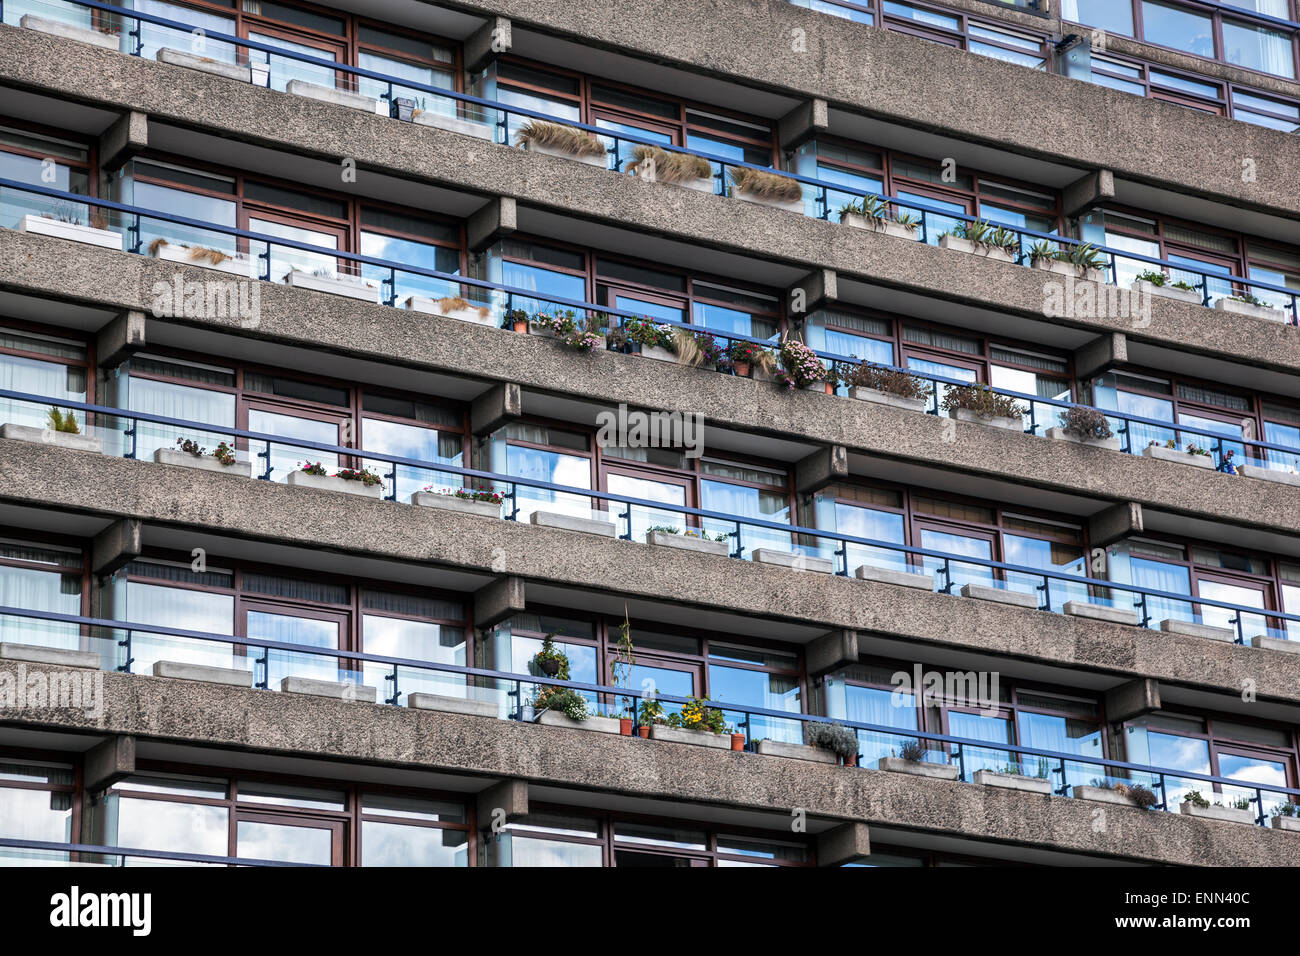 Detail of the John Trundle Court in the Barbican Estate, London, England Stock Photo